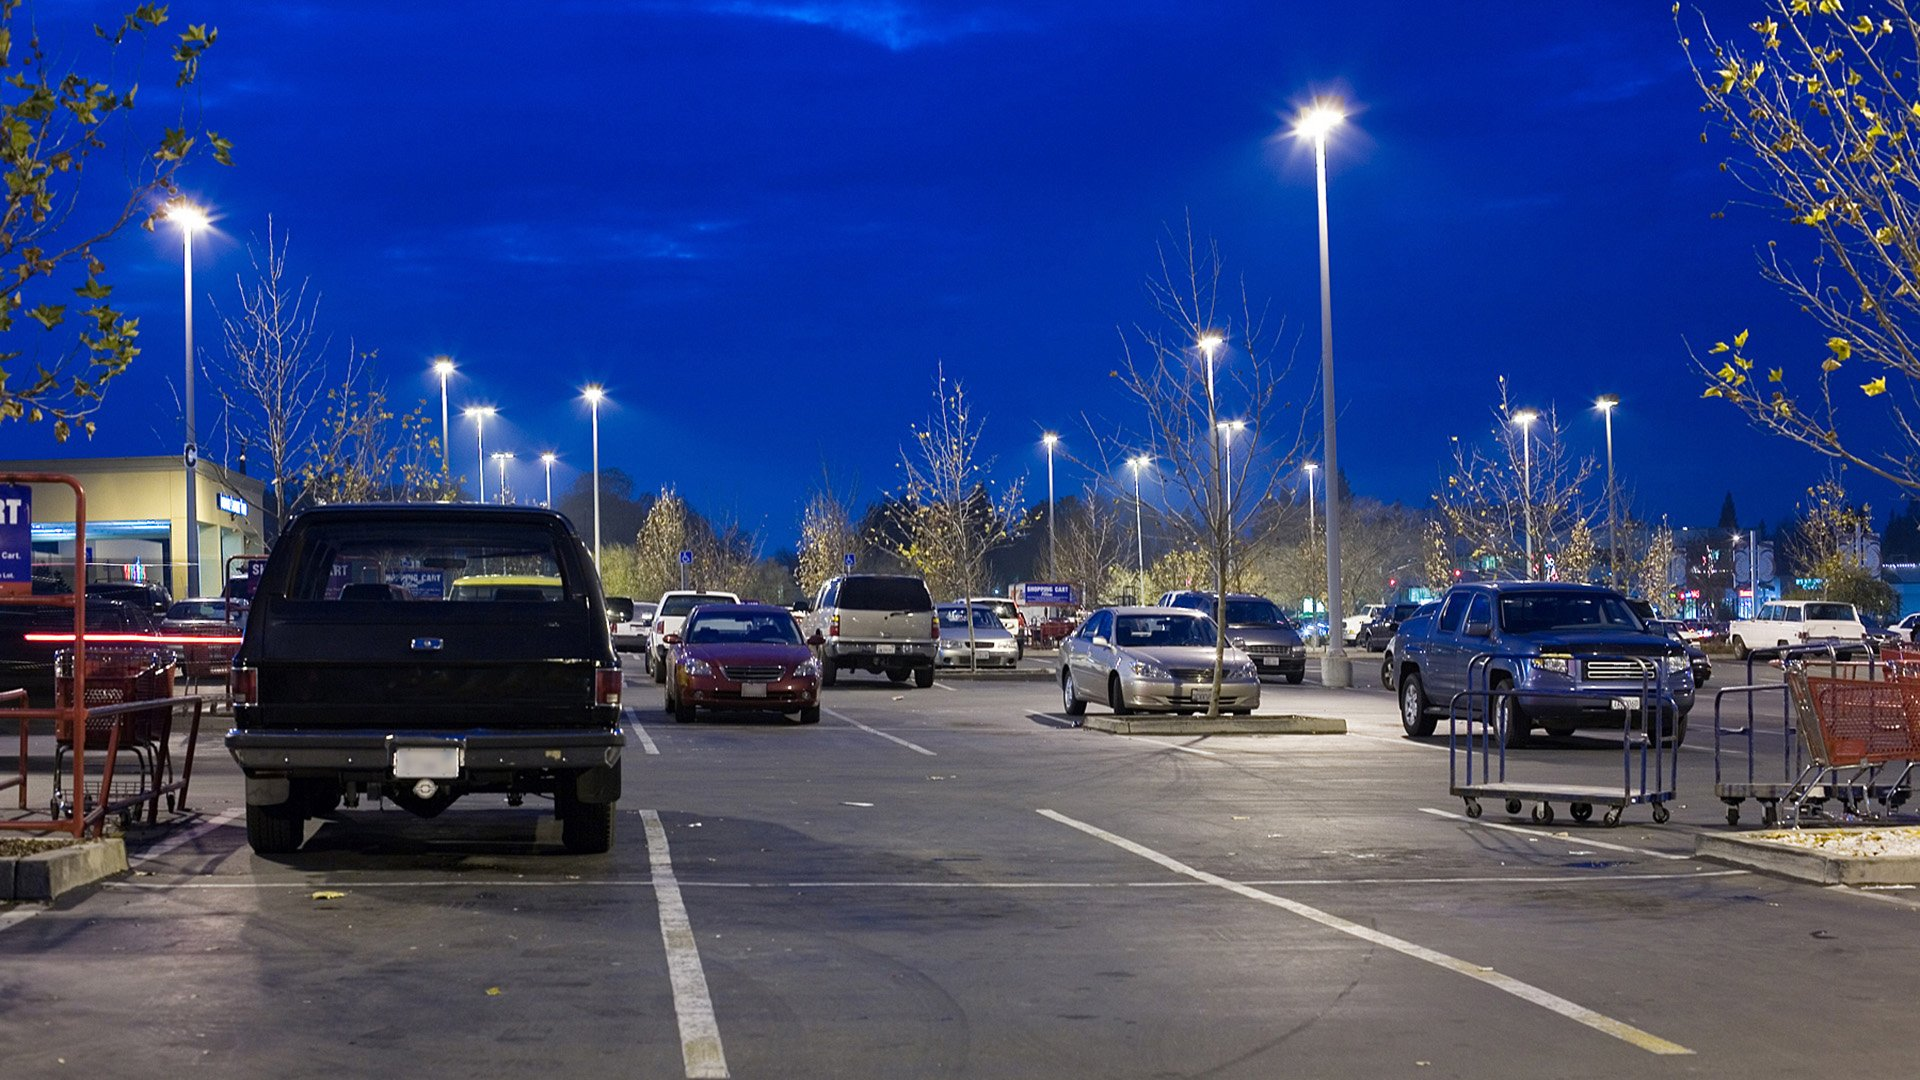 Parking lot Lighting Willow Electrical Supply